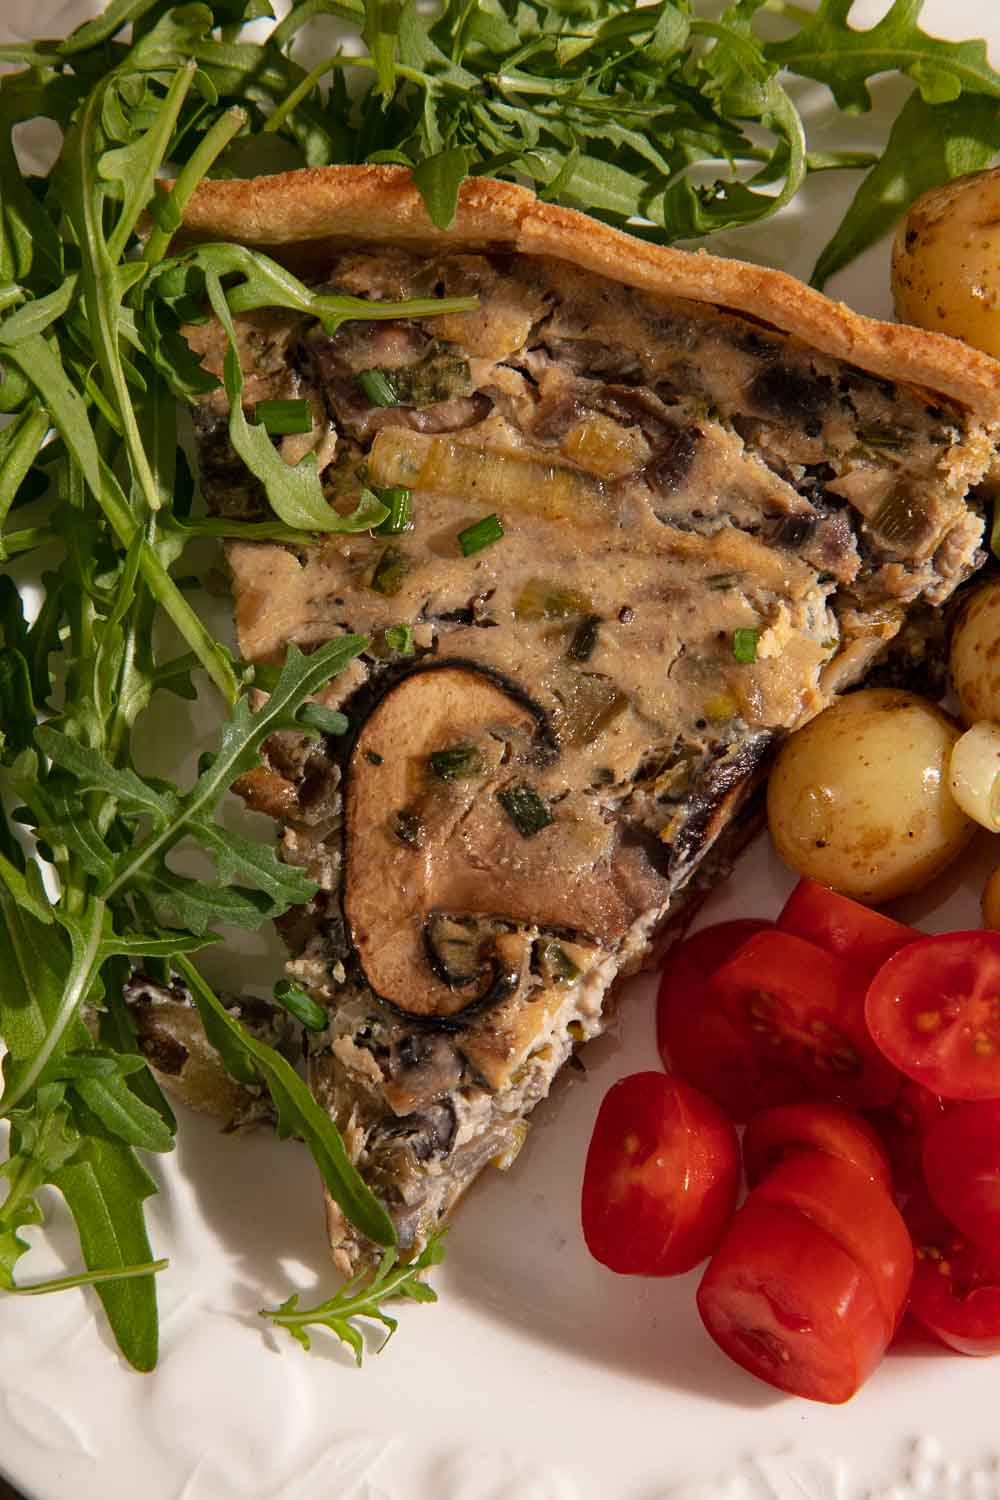 A slice of vegan mushroom quiche with new potato salad, sliced tomatoes and rocket.